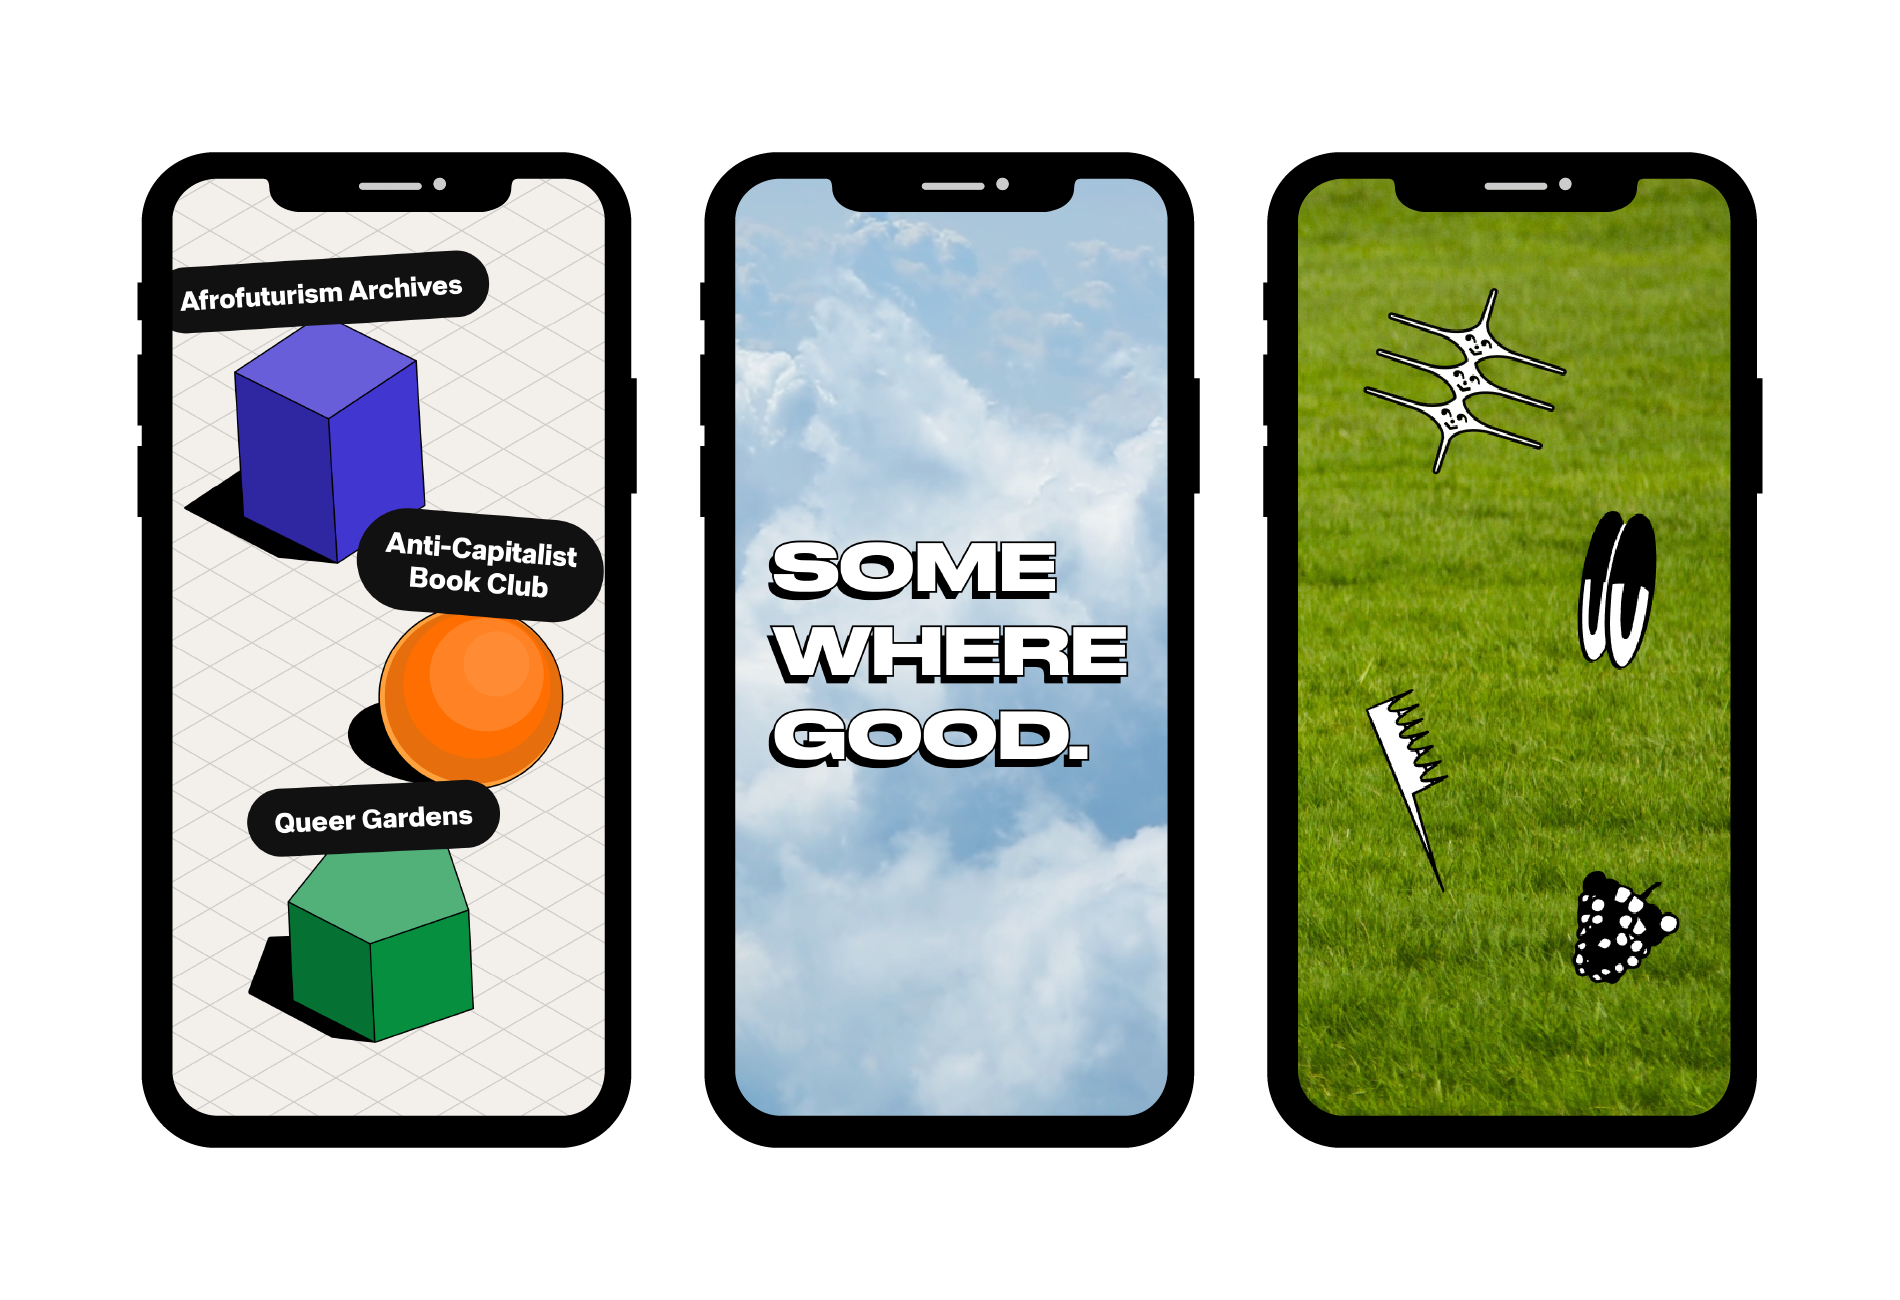 Somewhere Good just raised $3.75M to make your somewhere good